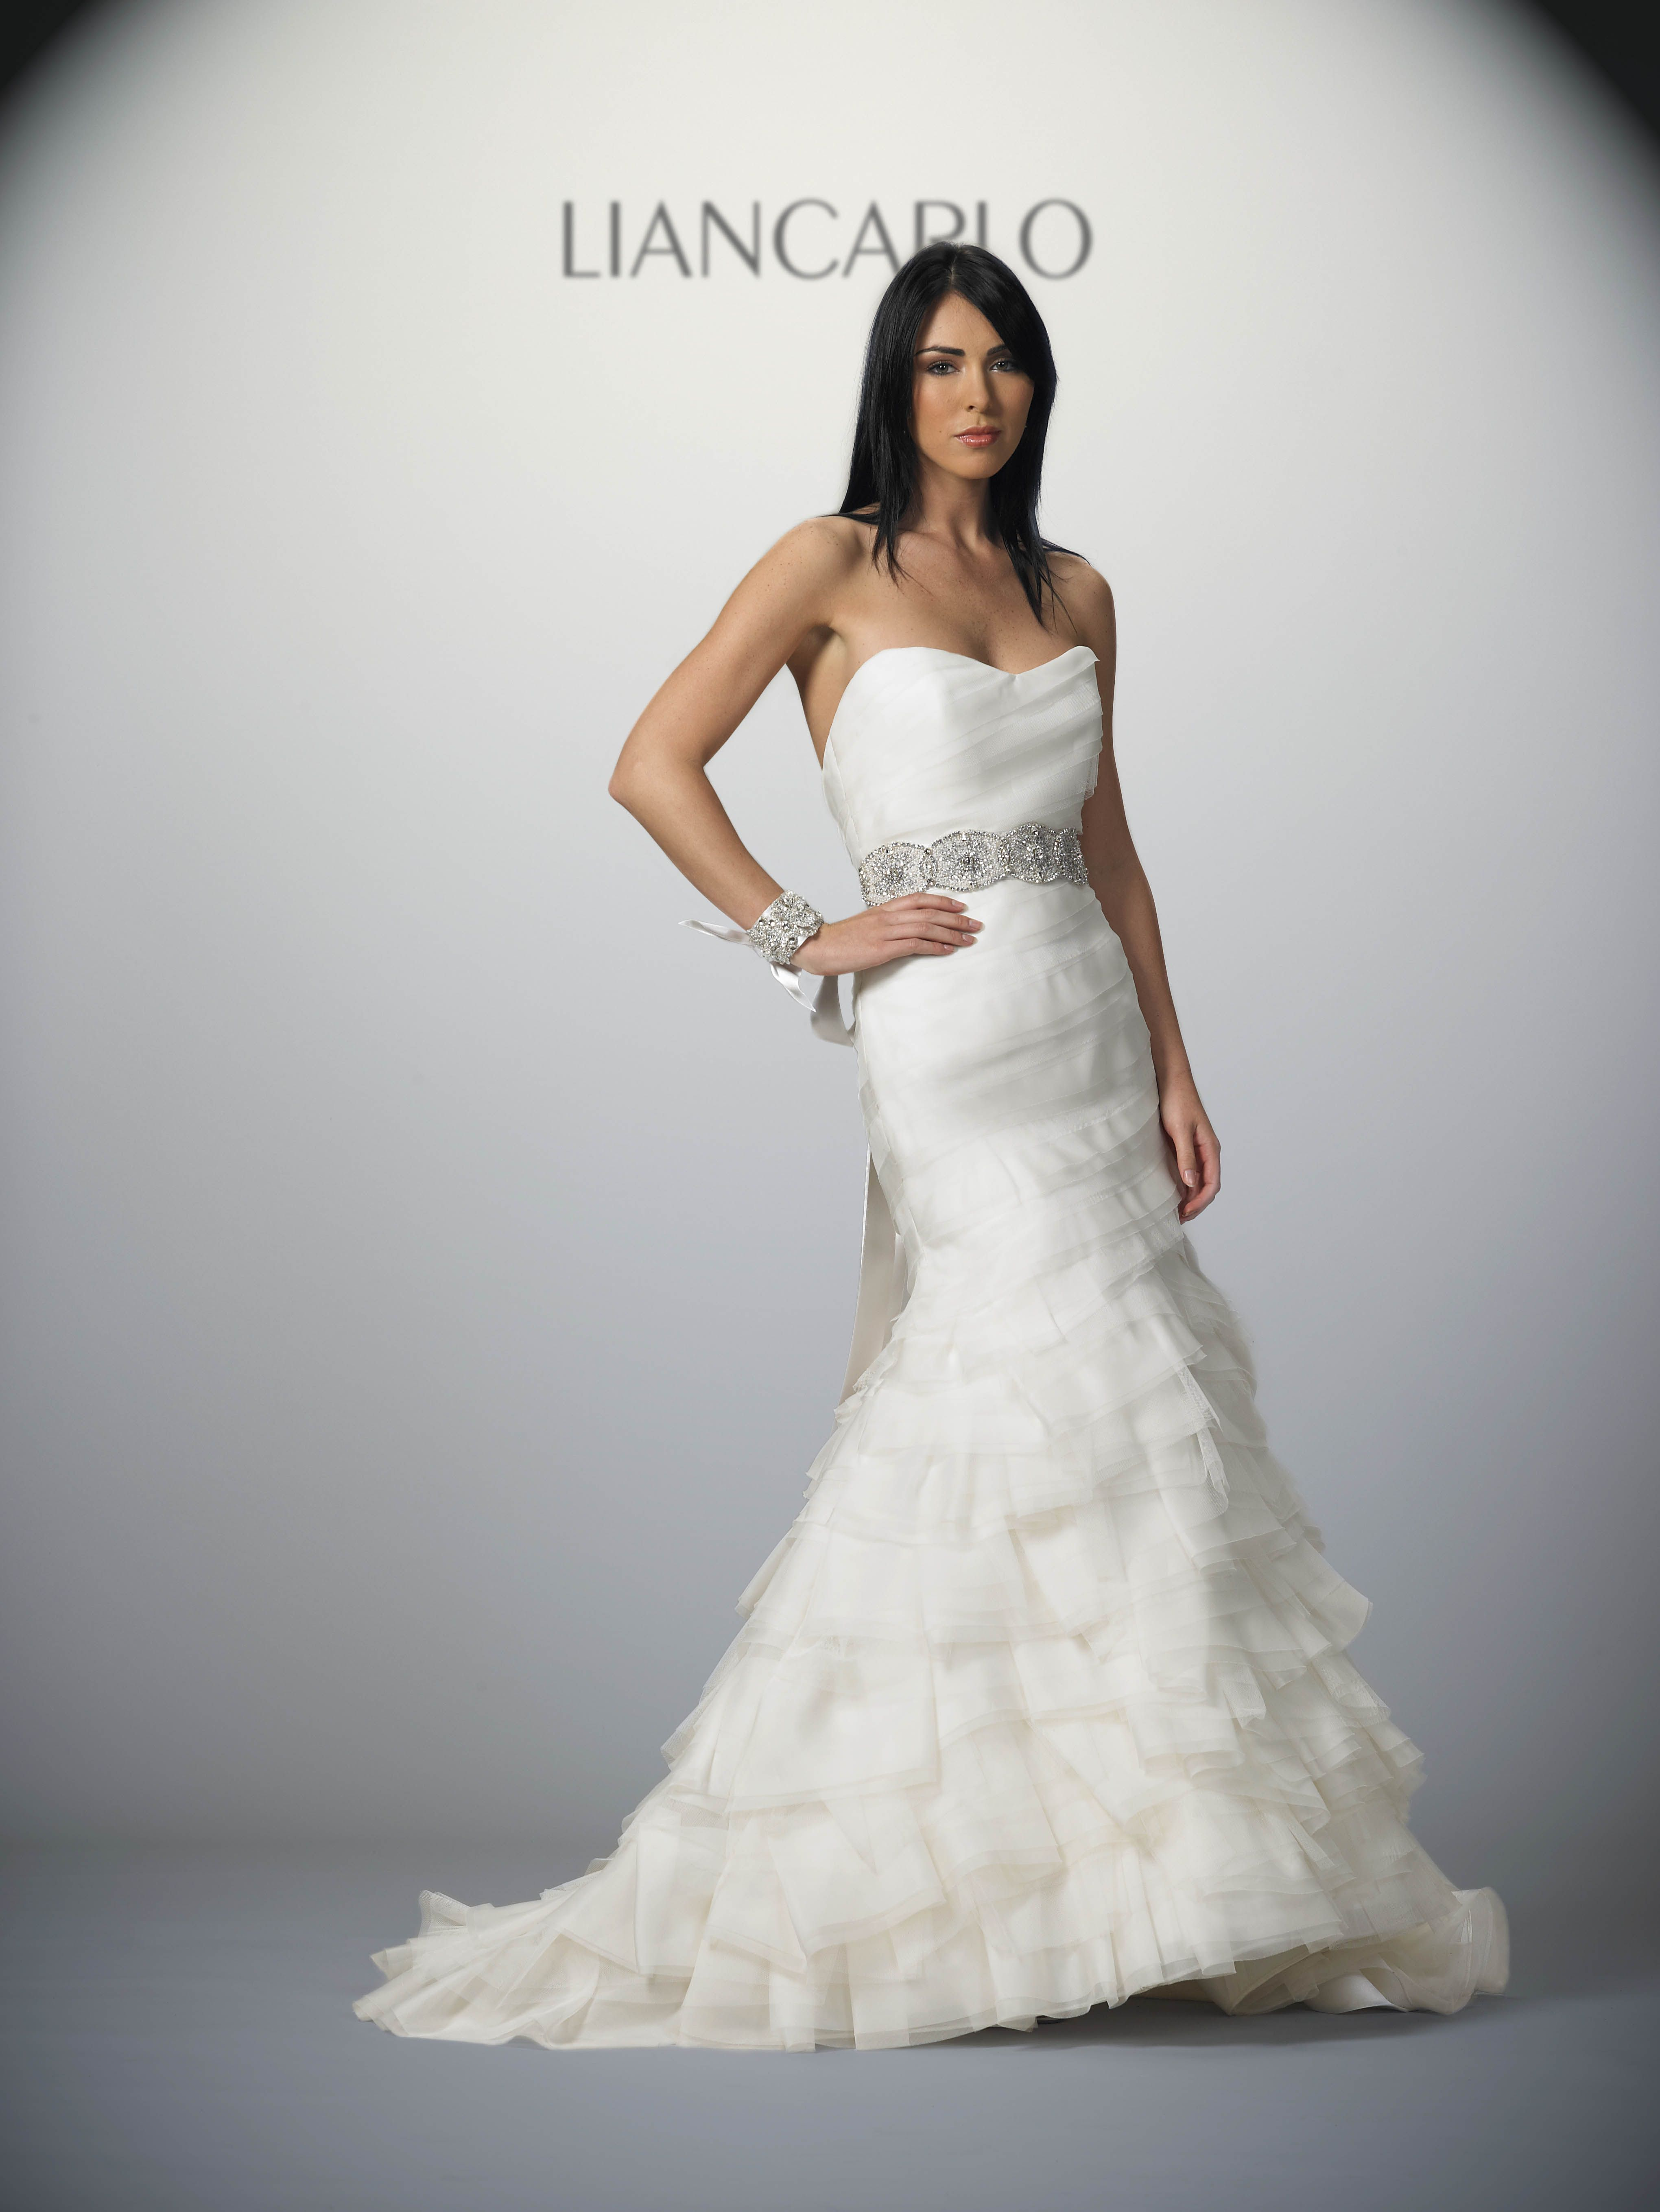 Liancarlo line i do bridal couture in baton rouge wedding